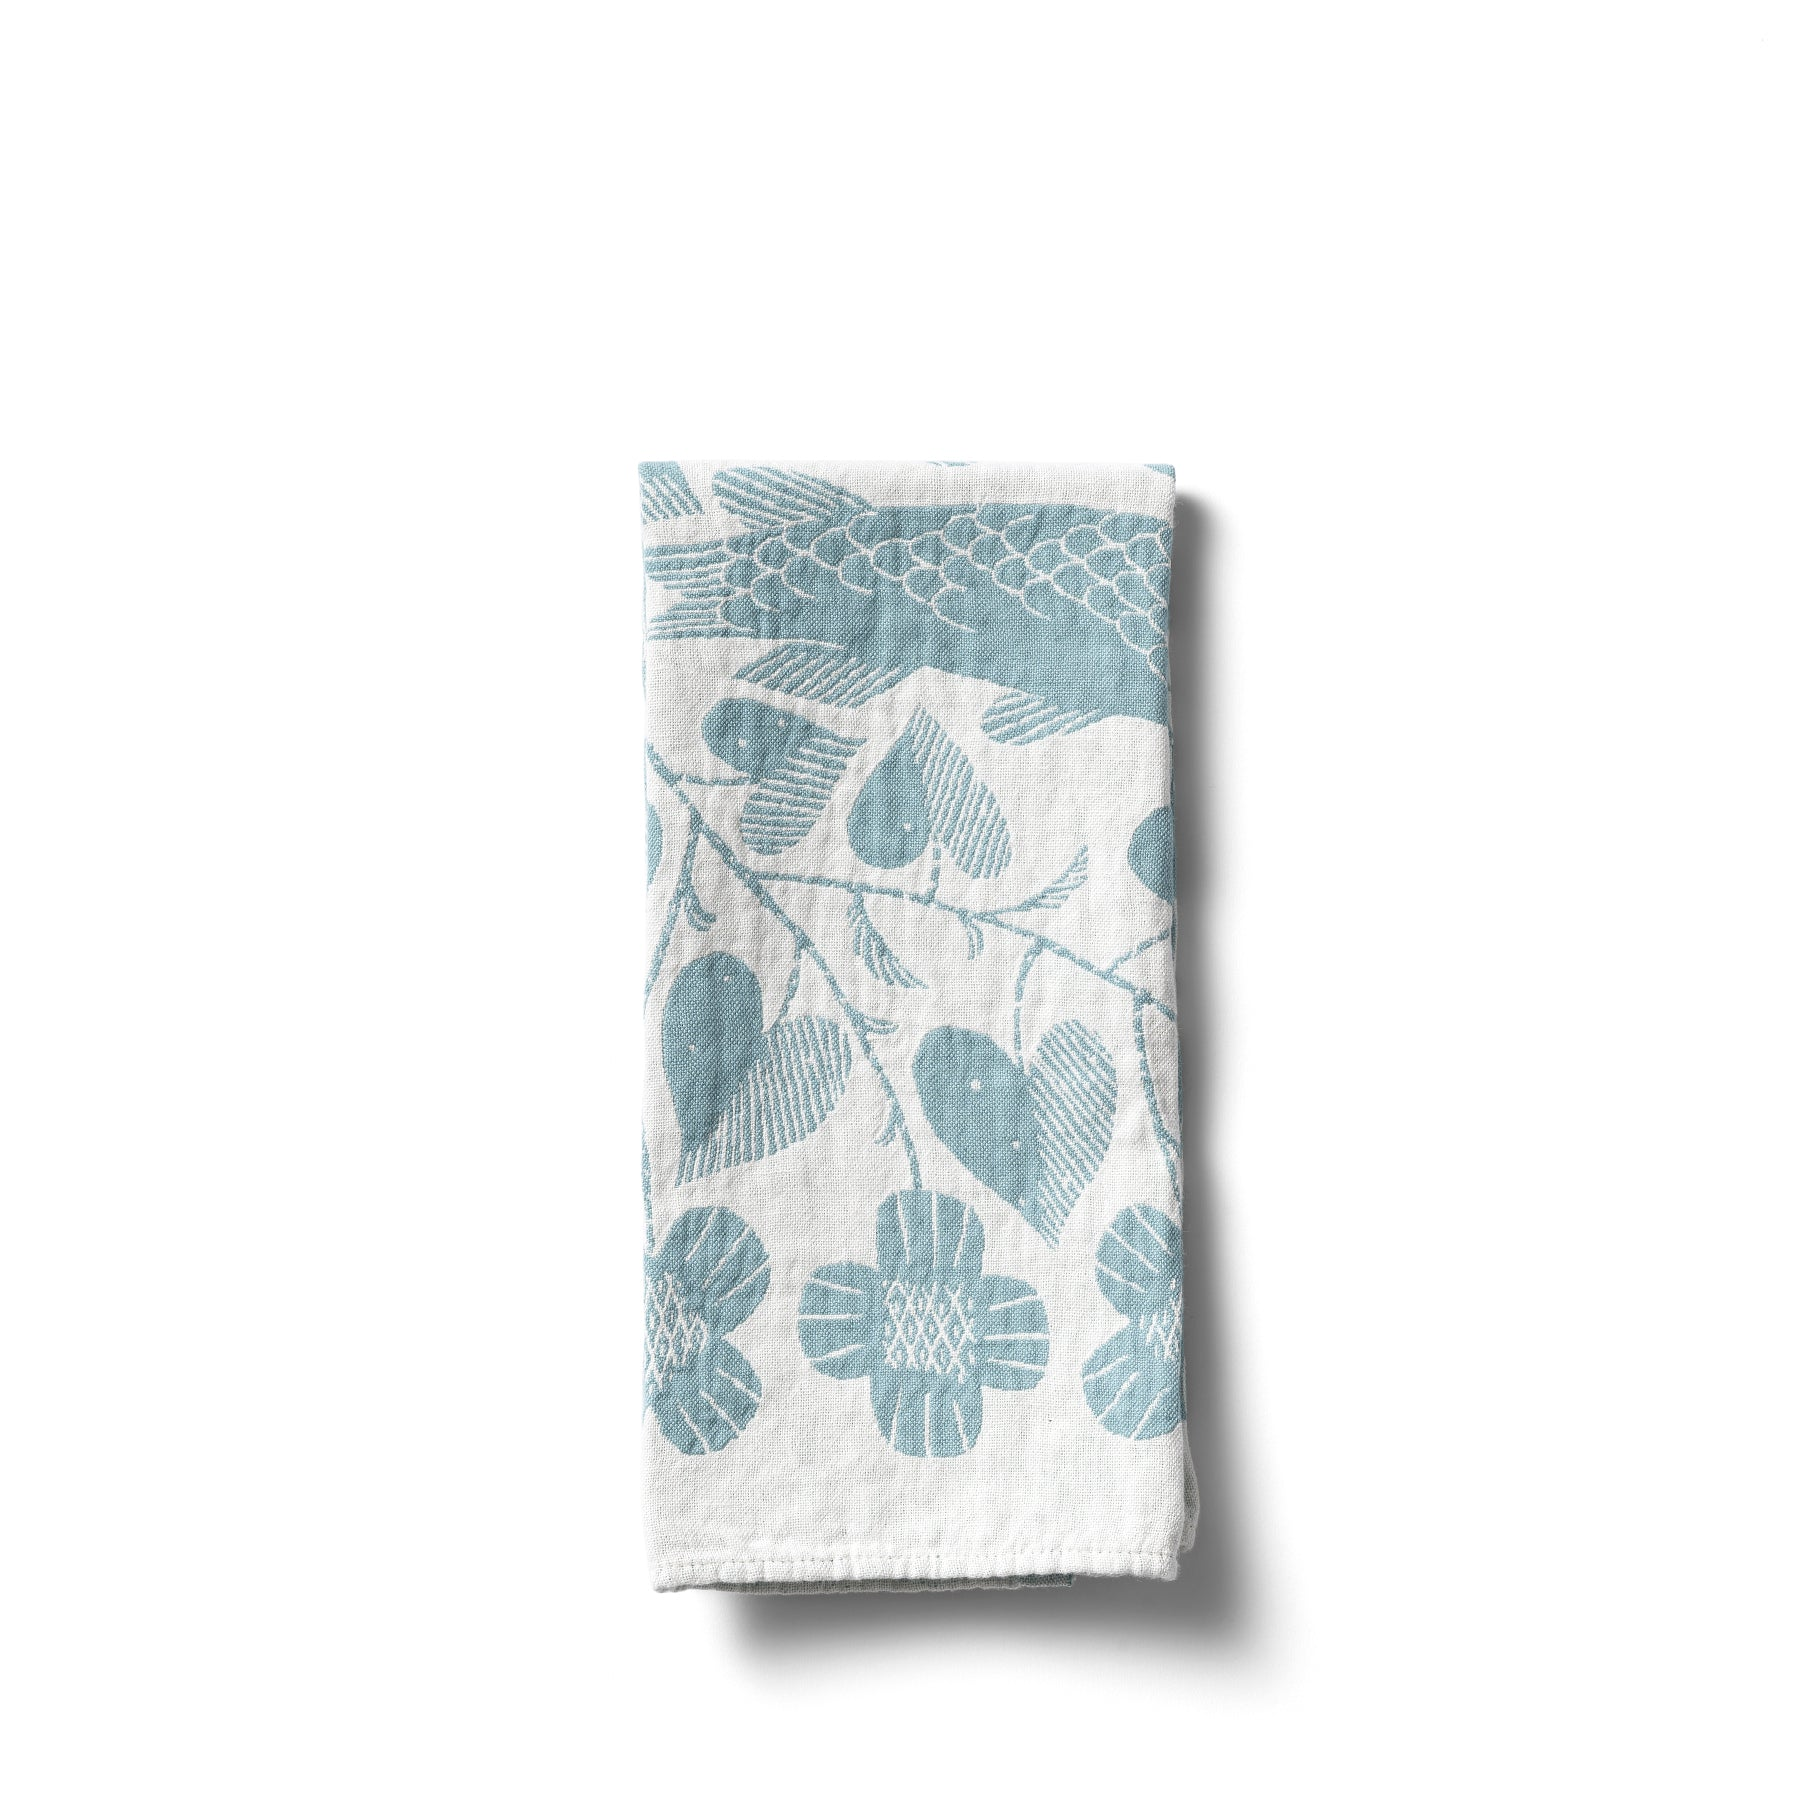 Kala Tea Towel in Turquoise Zoom Image 1